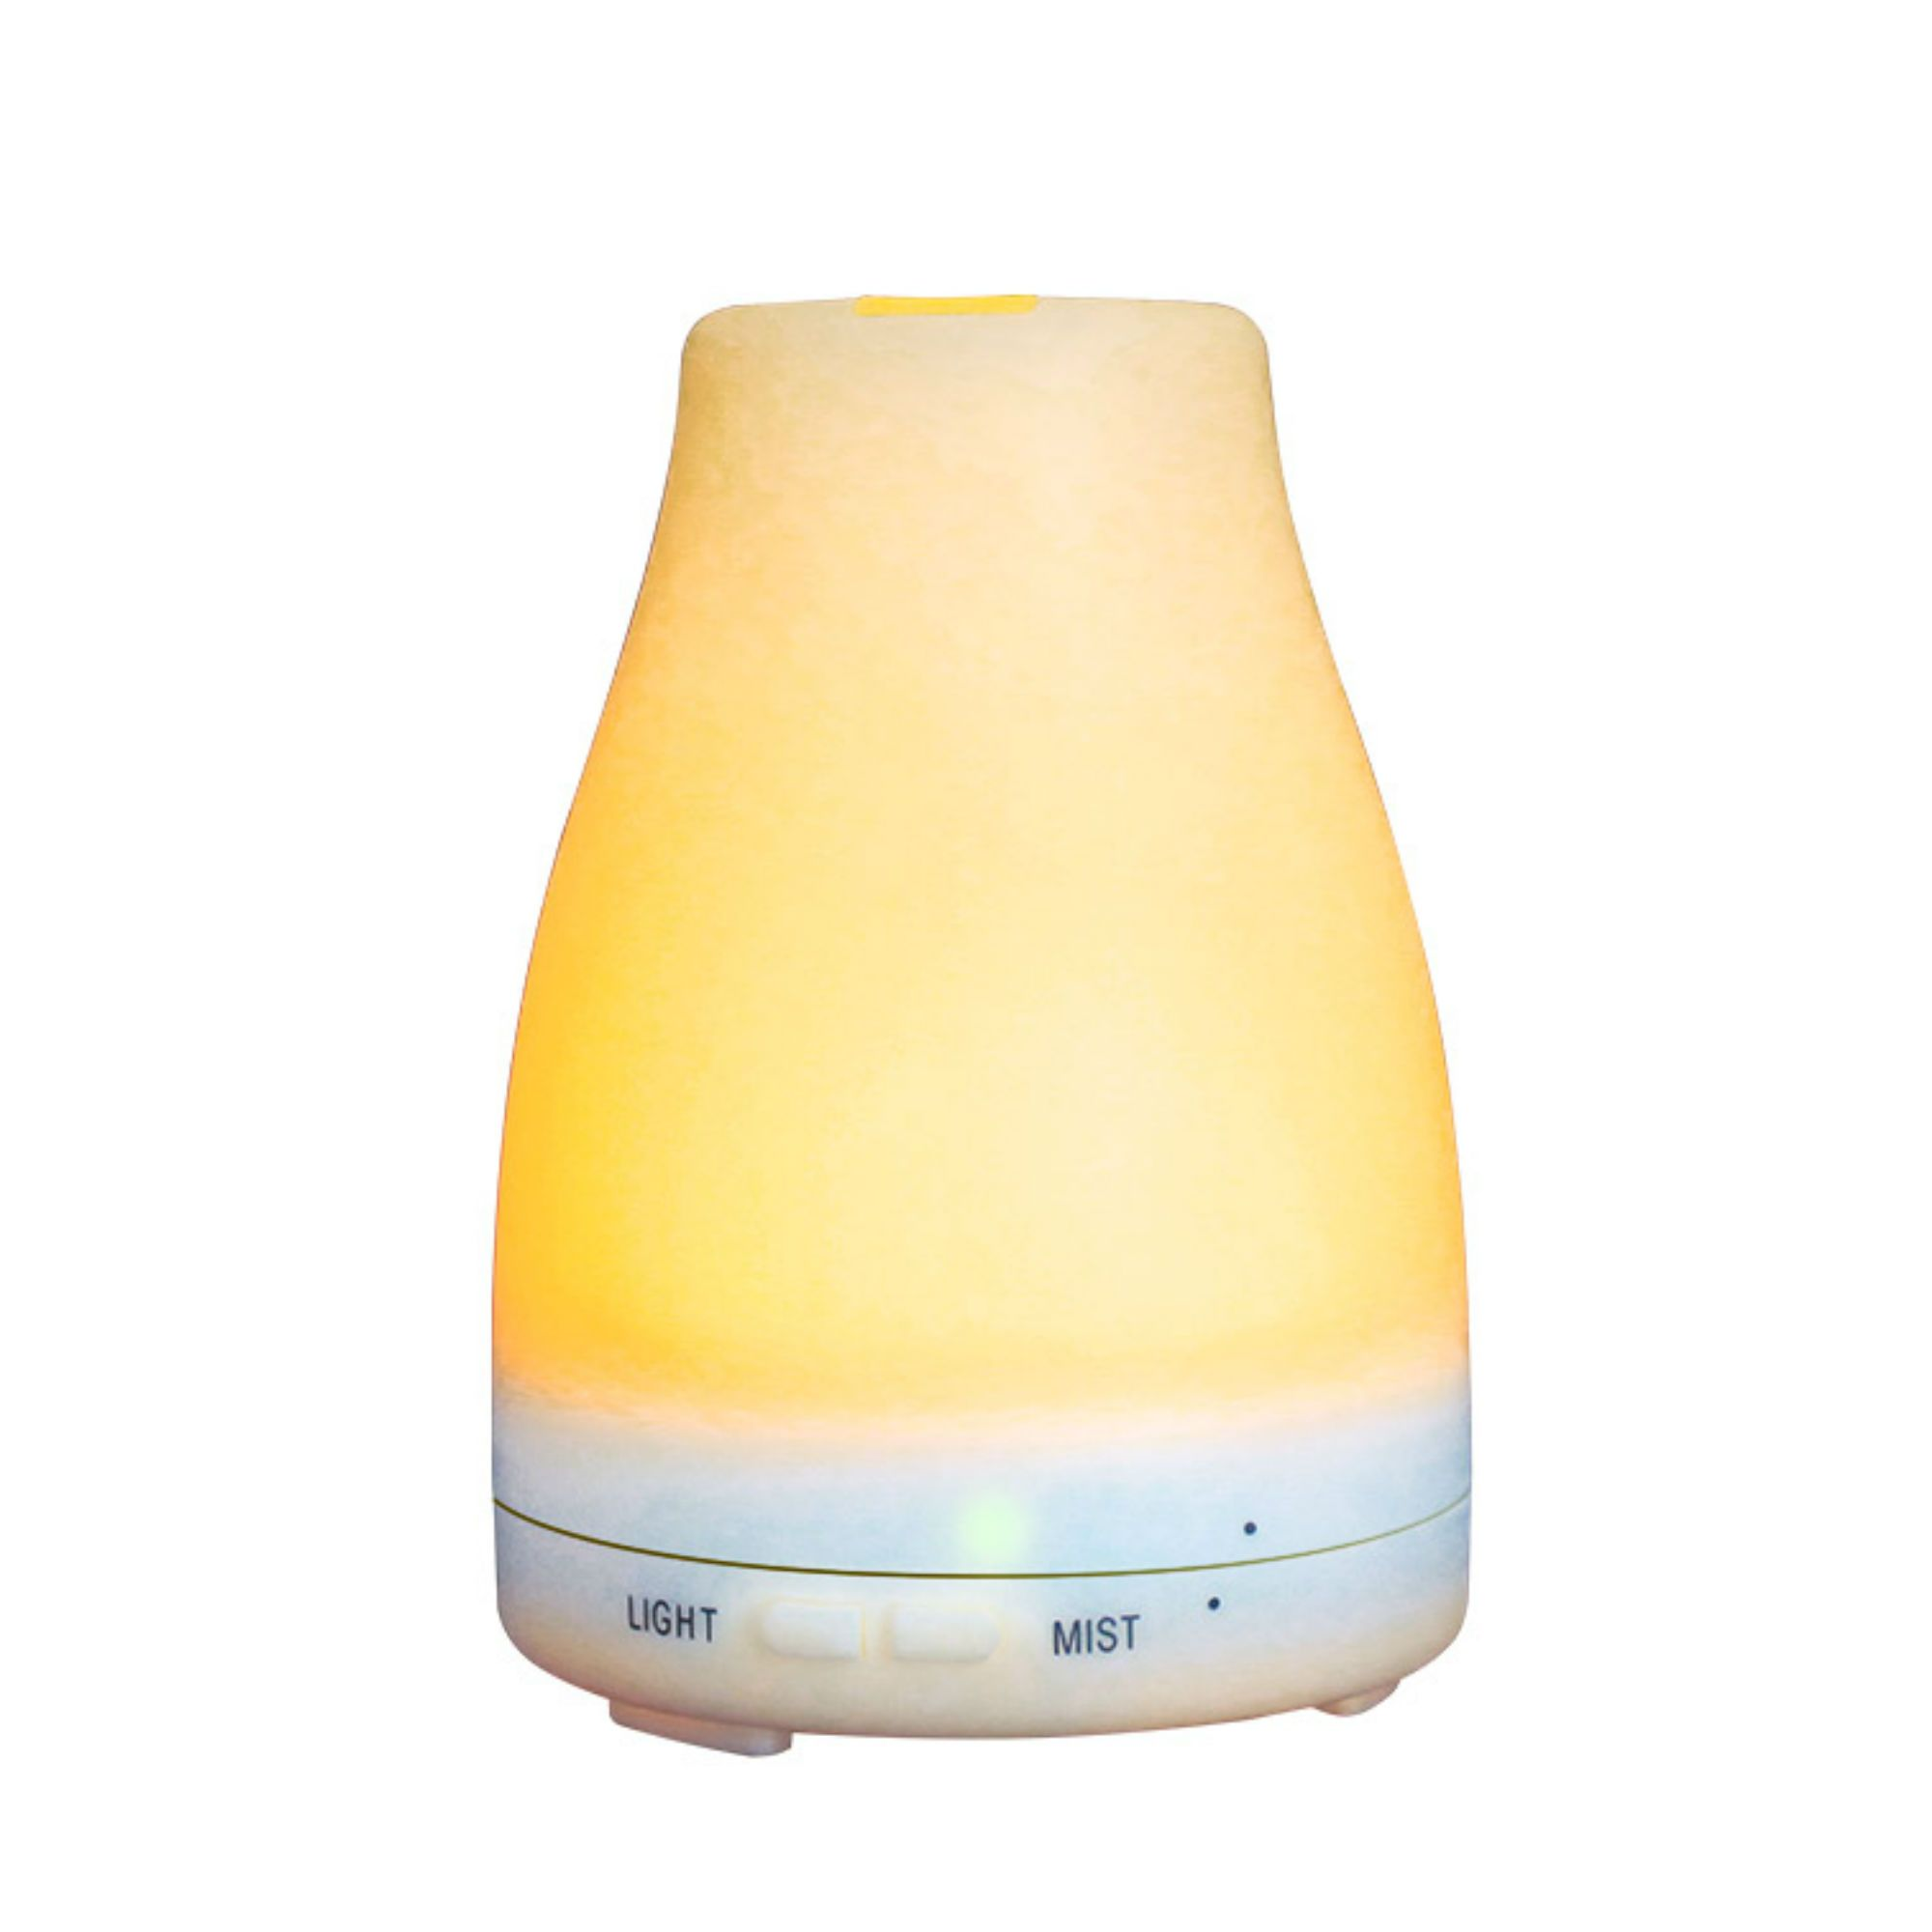 Wonderful_Scents_120ml_essential_oil_Diffuser_yellow_led